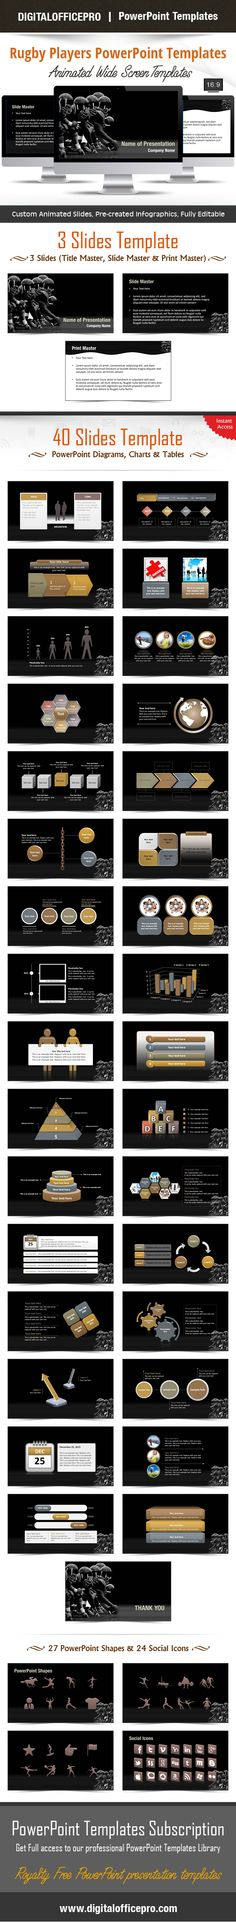 Impress and Engage your audience with Muscle PowerPoint Template - water powerpoint template